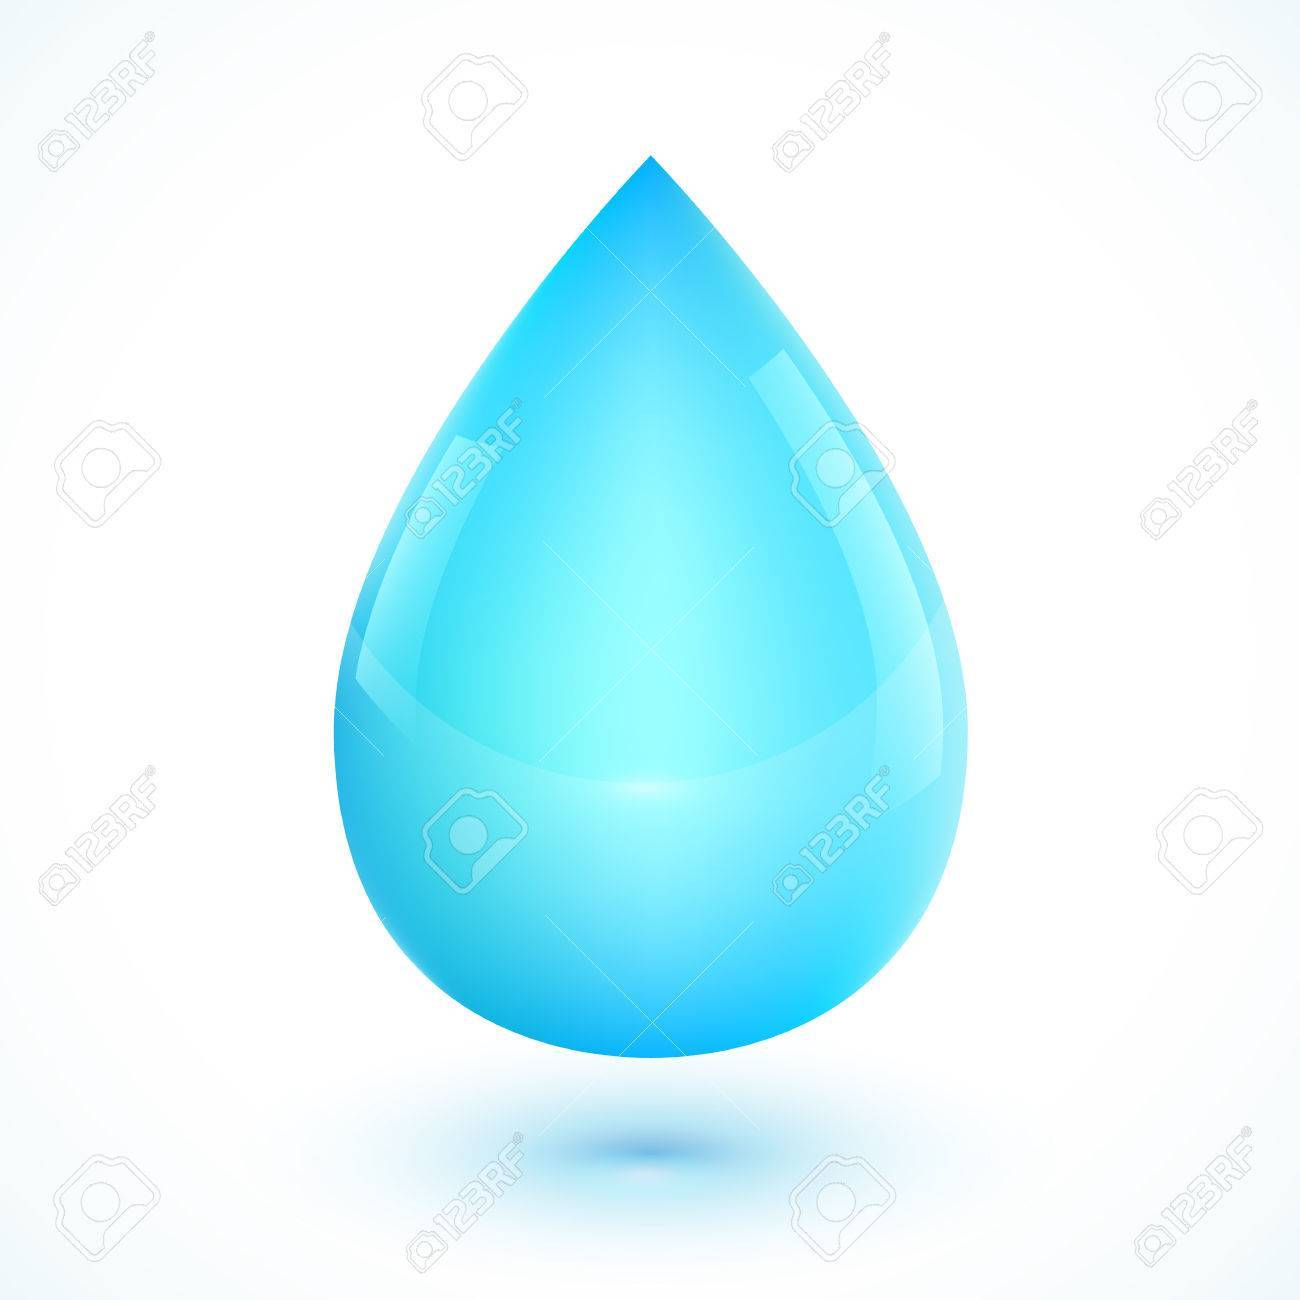 Water clipart realistic clipart freeuse download Blue realistic vector water drop isolated on white » Clipart ... clipart freeuse download